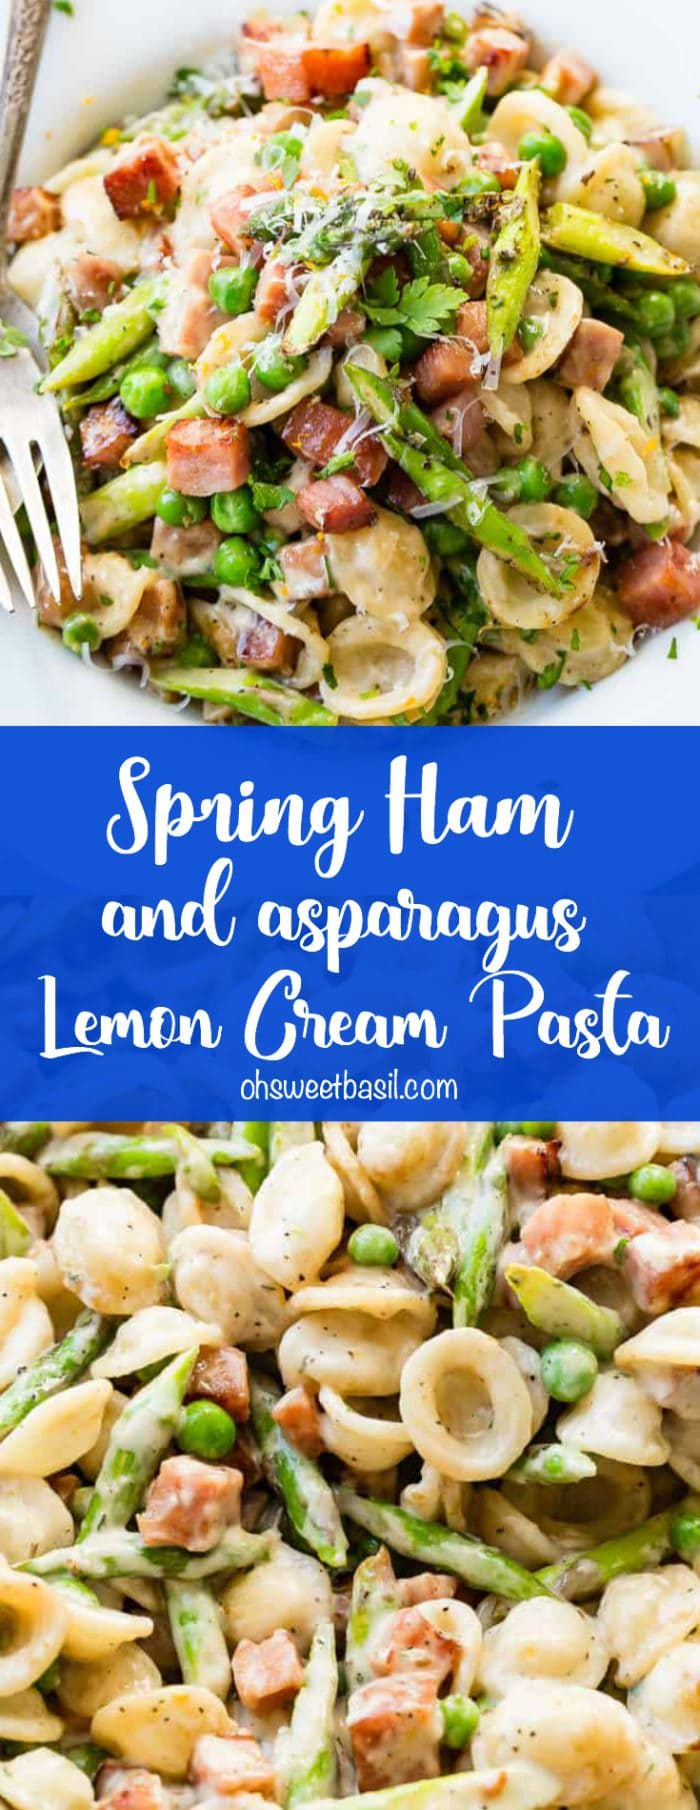 A photo of a white bowl full of cubed ham, asparagus, peas, and orcehiette pasta all in a lemon cream sauce.